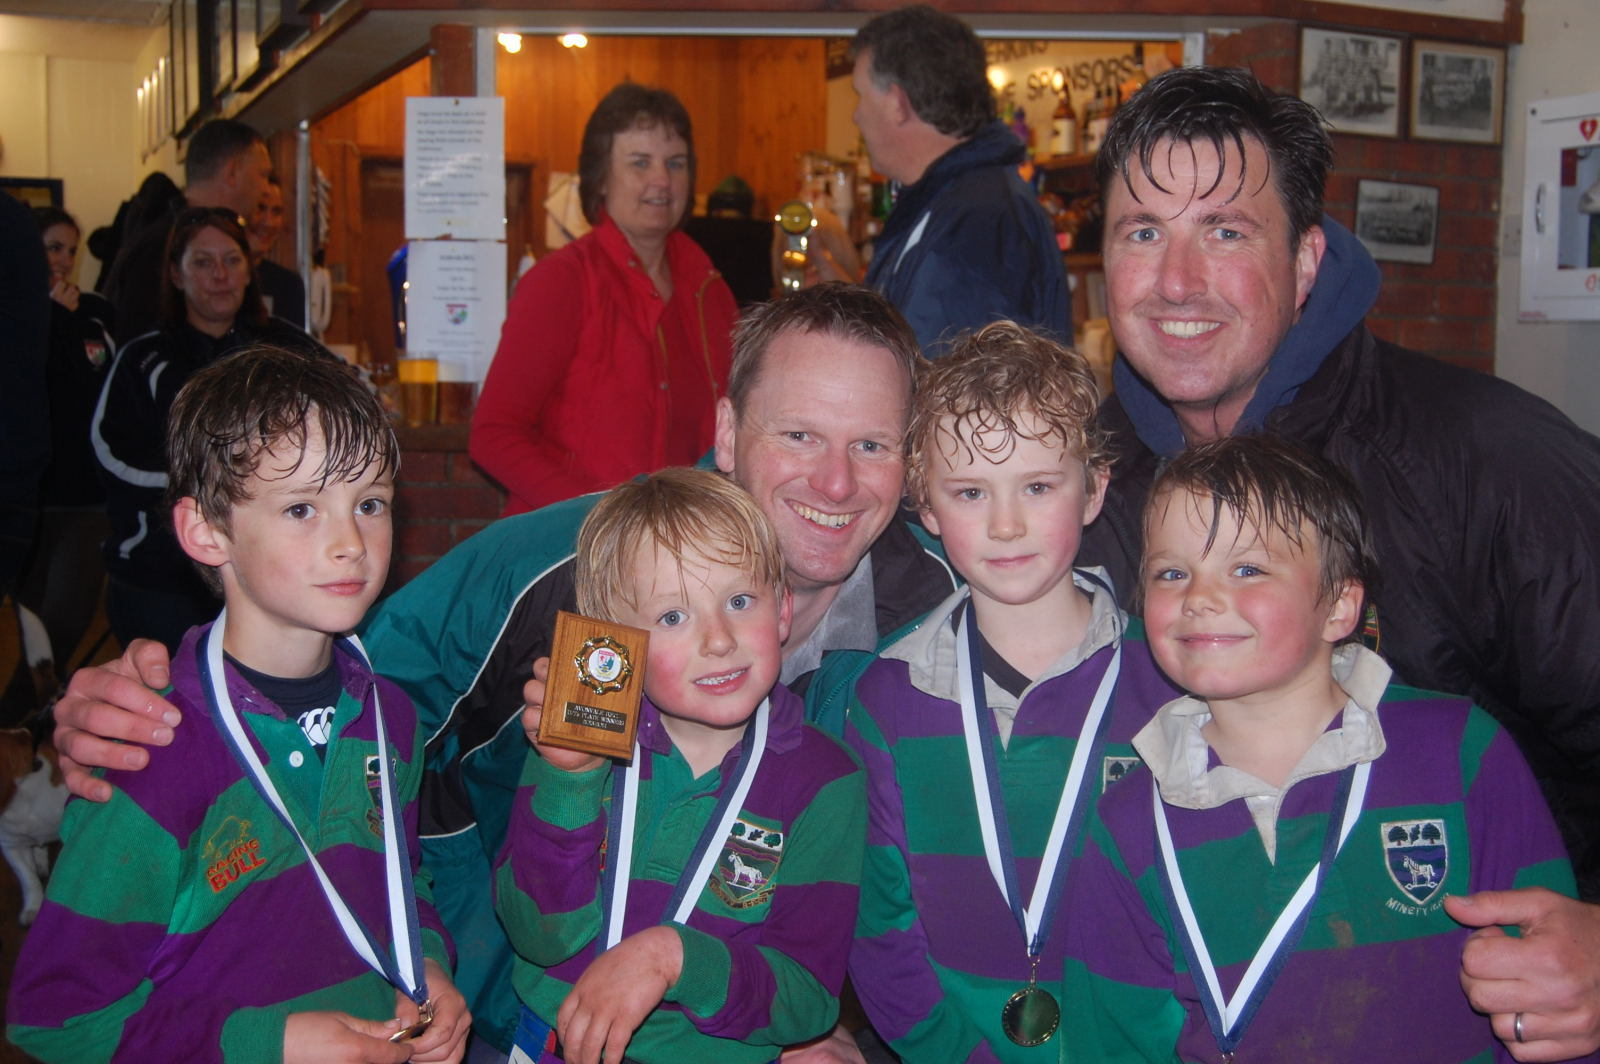 YOUTH RUGBY: Minety U7s just miss out in Avonvale Festival final